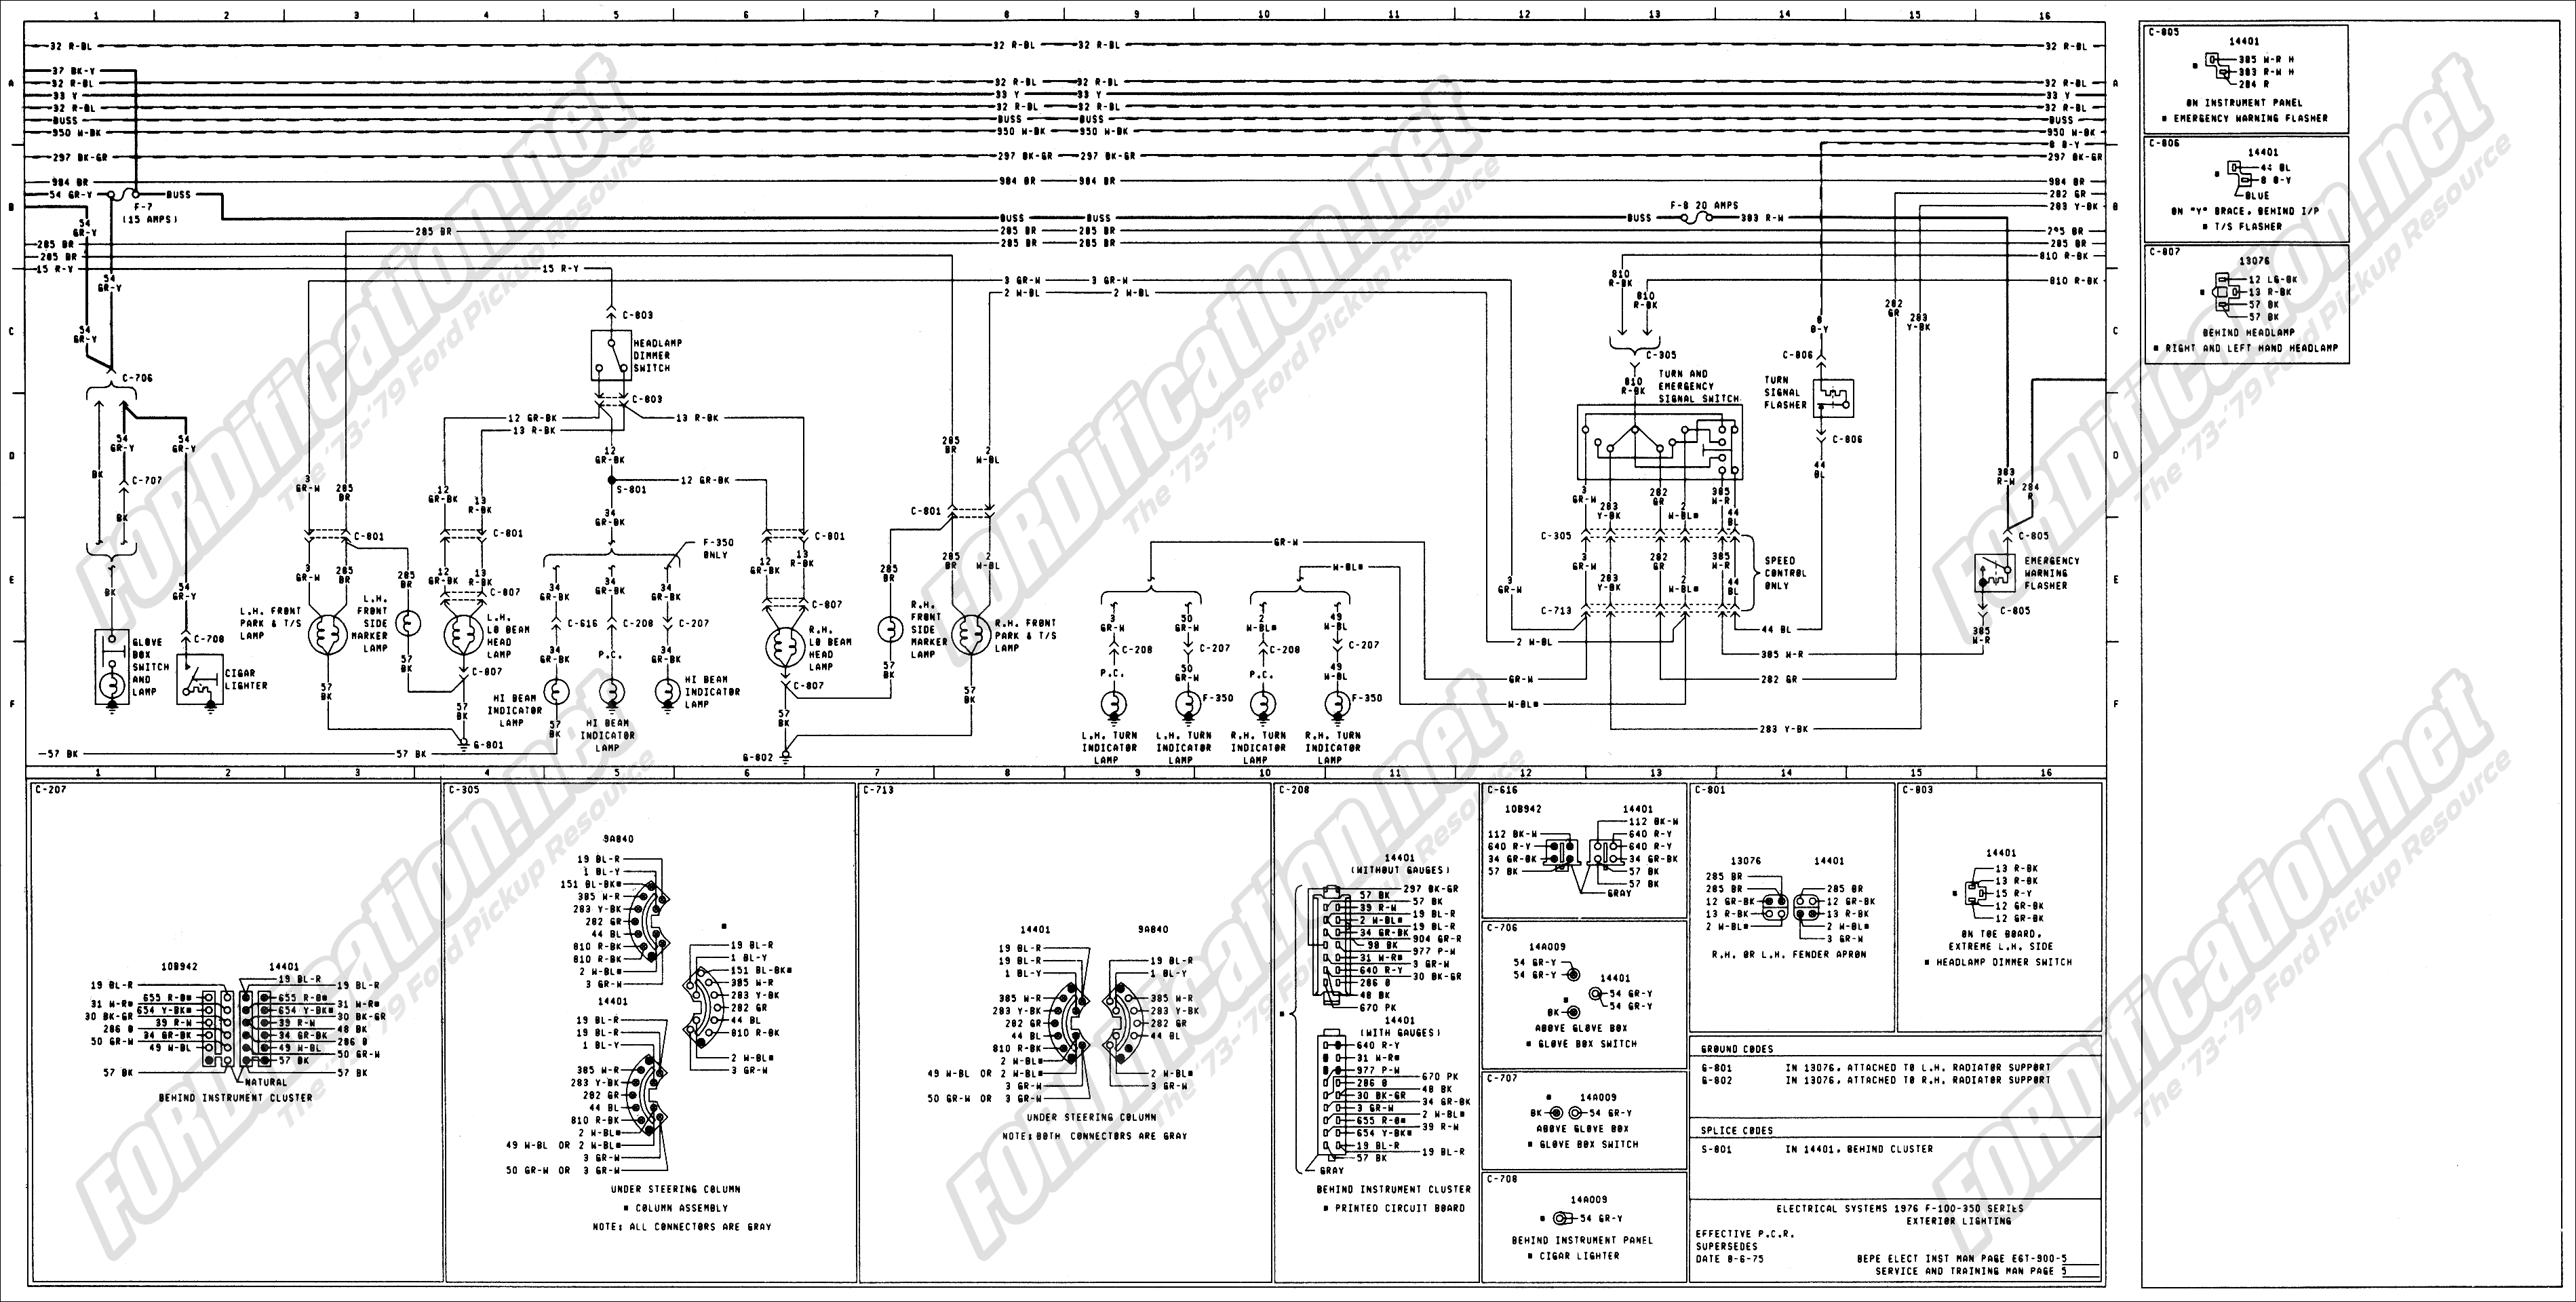 wiring_76master_5of9 1973 1979 ford truck wiring diagrams & schematics fordification net 1979 ford f150 wiring diagram at gsmportal.co